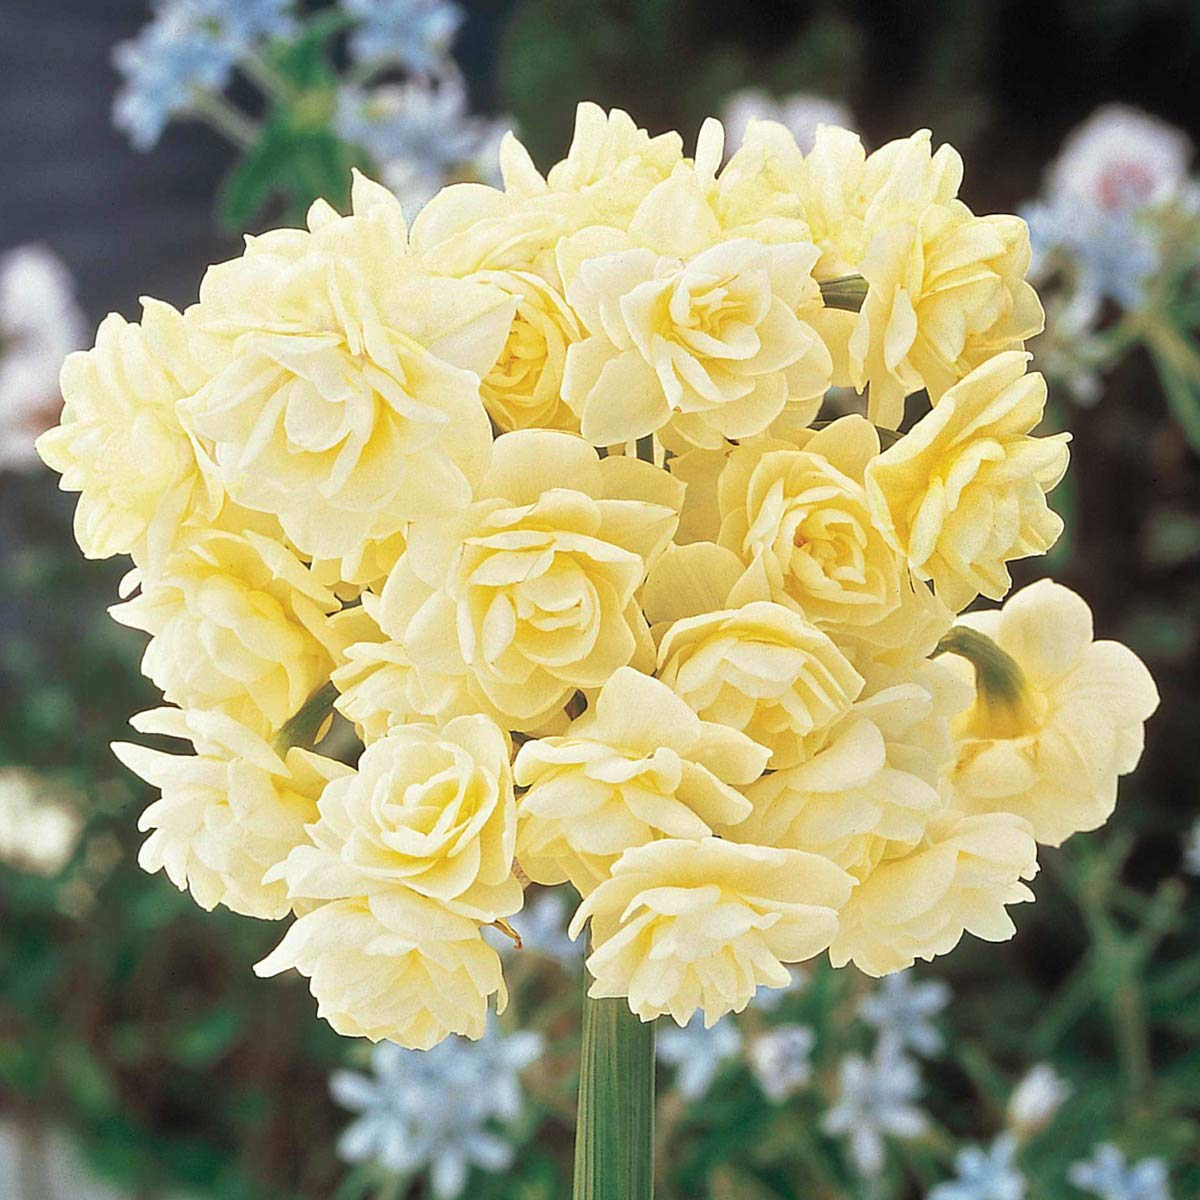 Spring Cheer Daffodil Spring Flowering Bulbs - A perfumed Bouquet of Beauty on a Single stem! 5 Bulbs Measuring 13+ cm per Order by BRECK'S